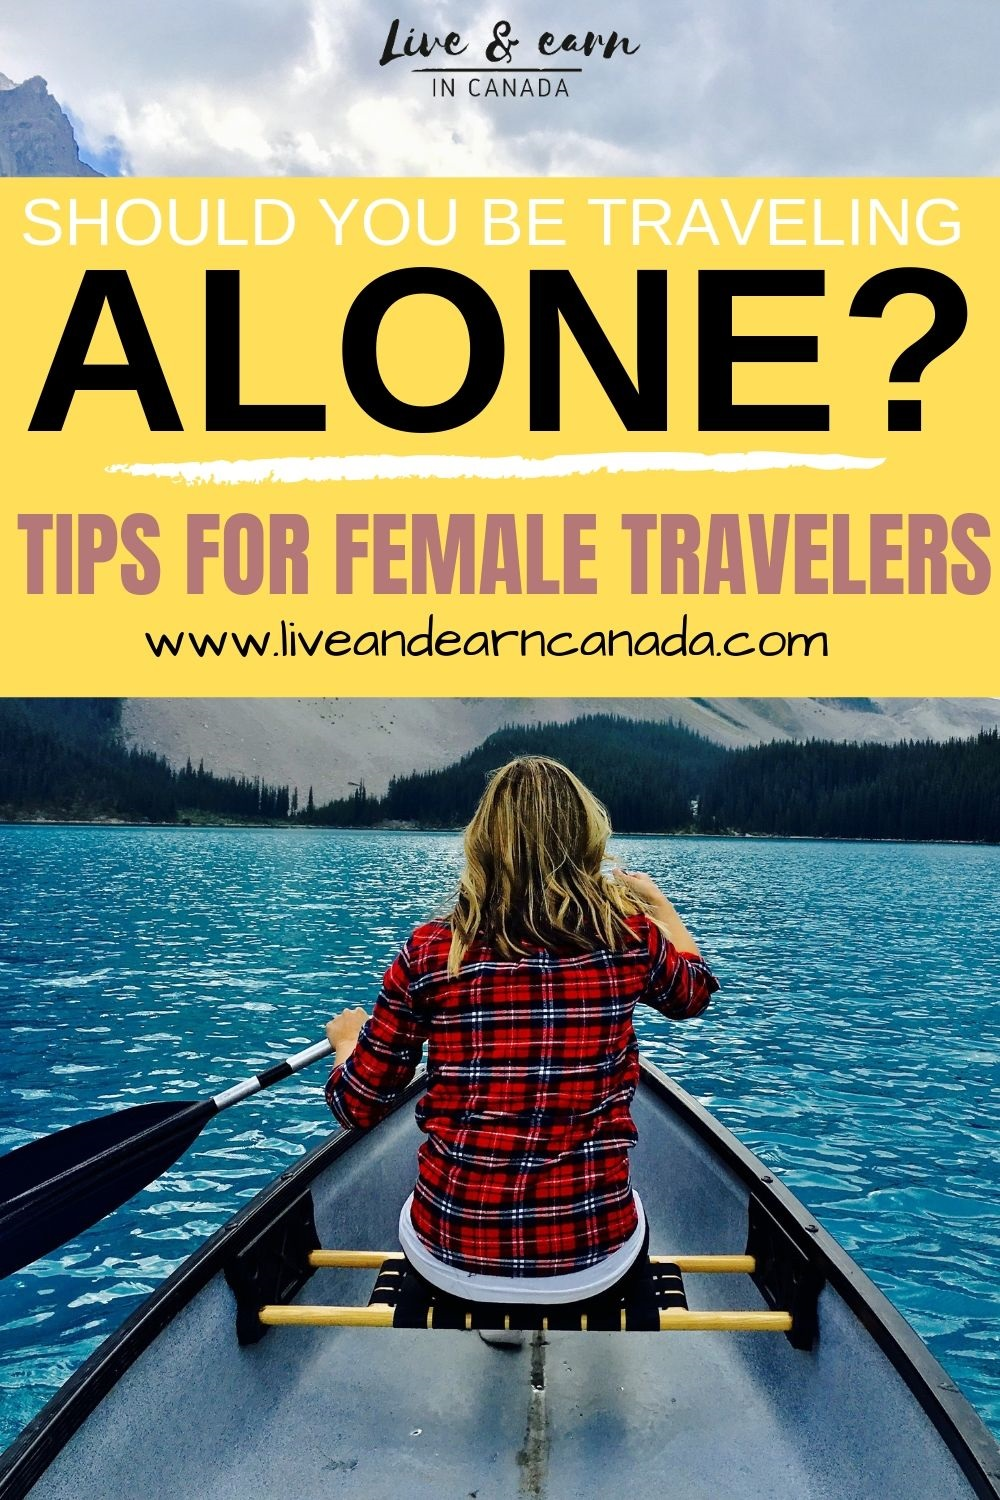 advantage of traveling alone. Here are the tips and tricks for solo travelers and how to get by! Female solo travelers can really have a good time on single trips! #solotravelers #travelingtips #travel